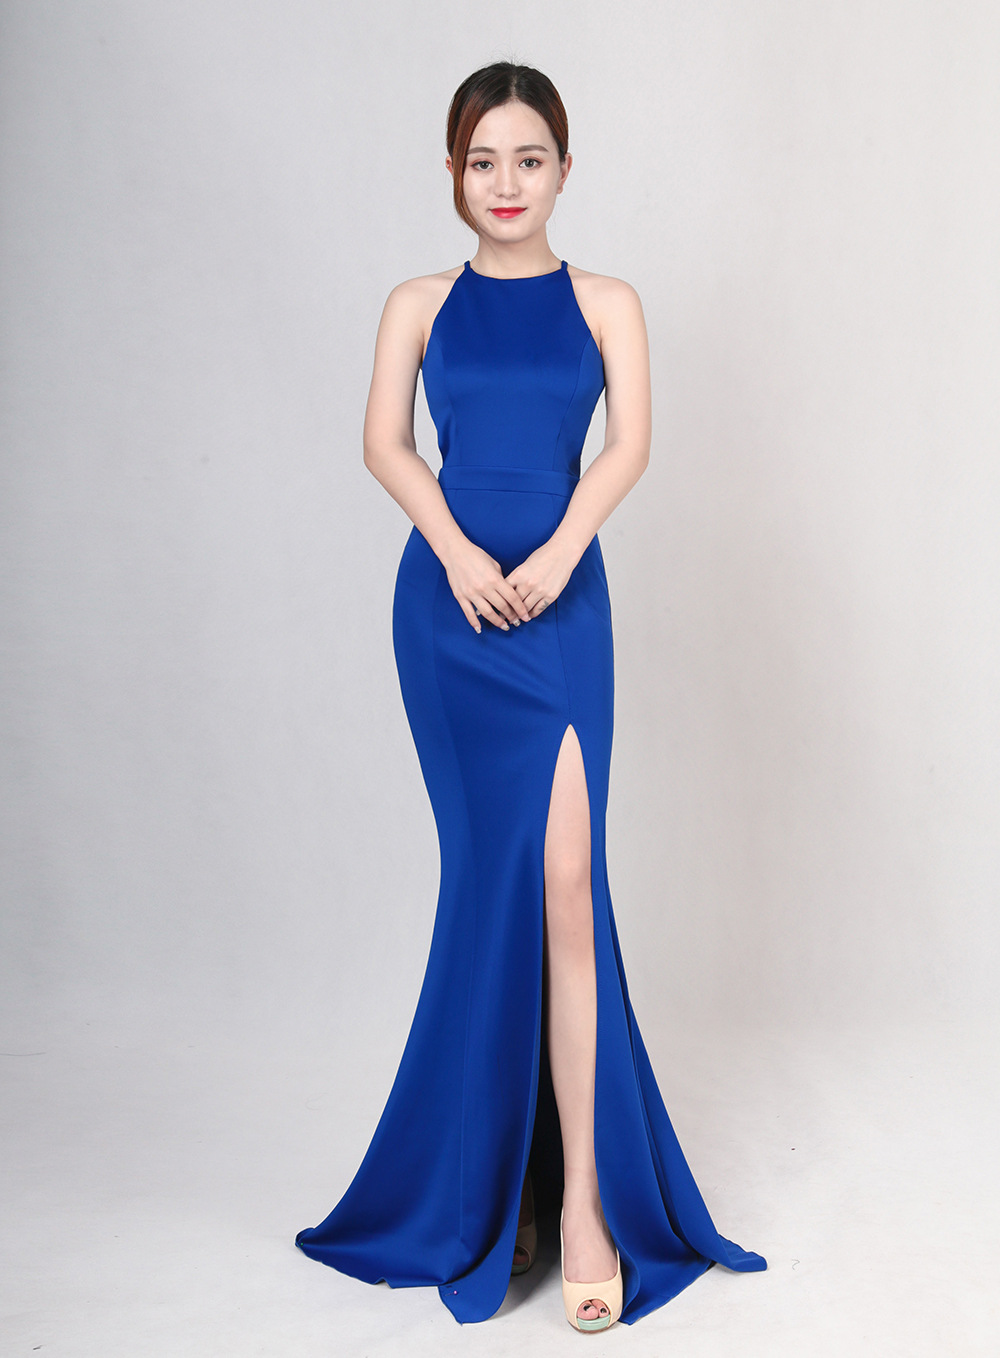 The wedding evening gown for the bride's wedding banquet in 2017